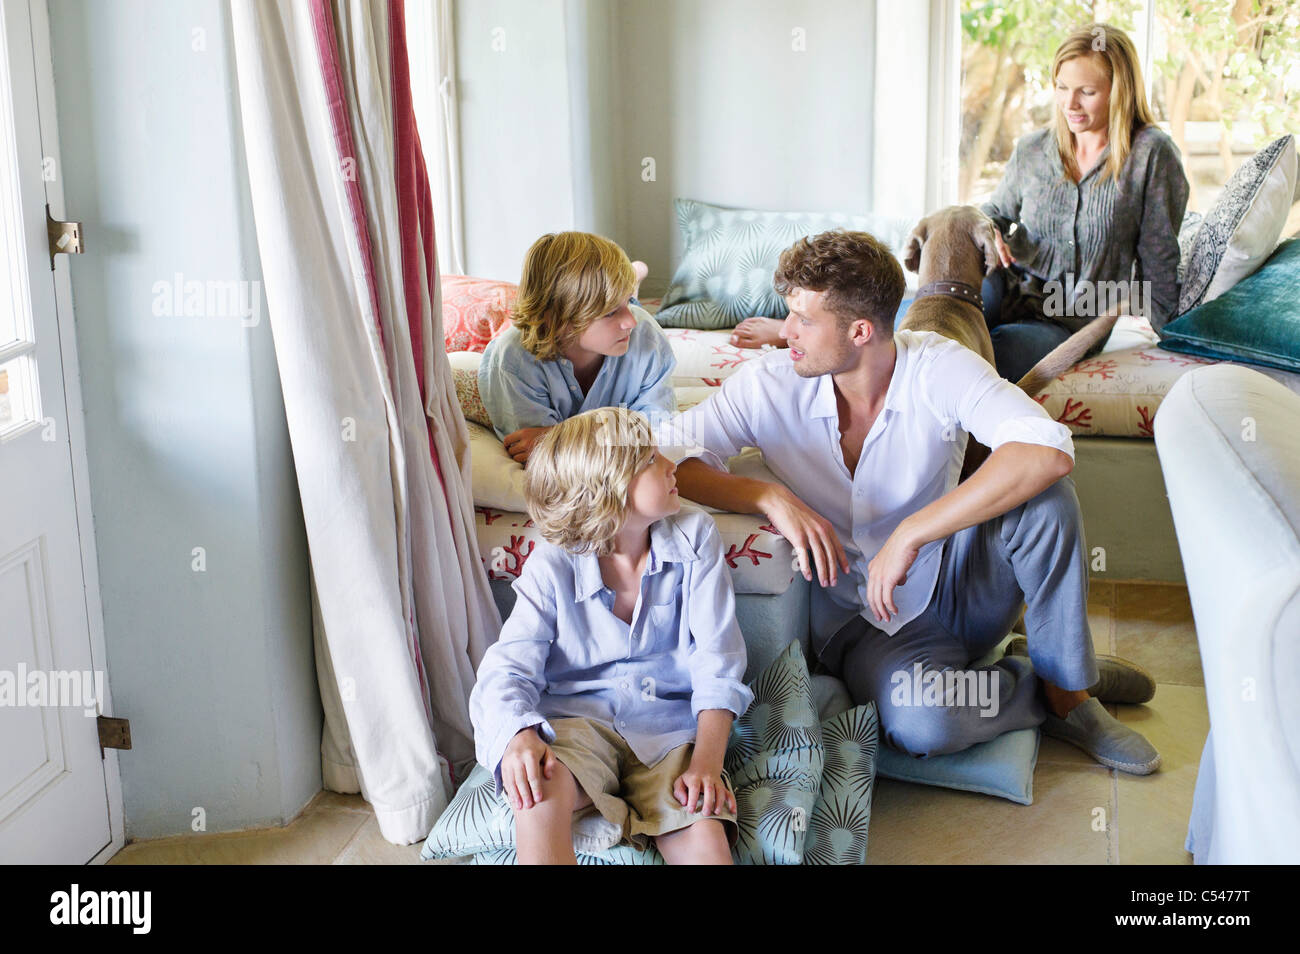 Family sitting together at house - Stock Image